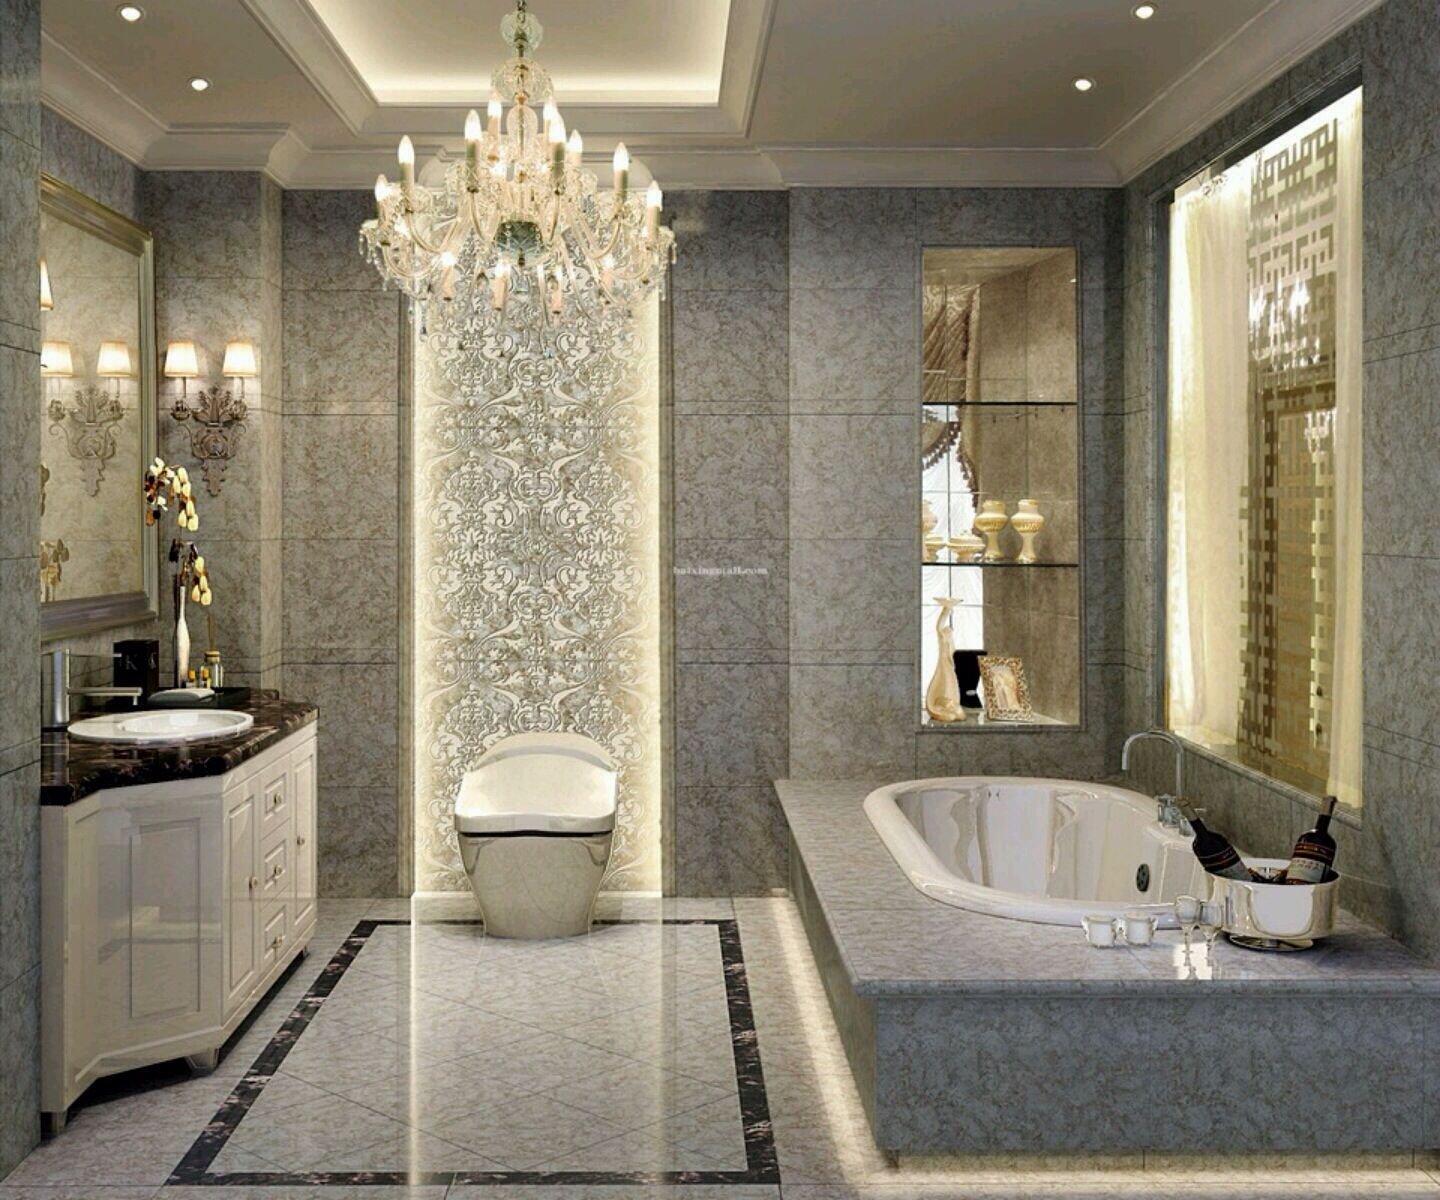 Dazzle bedazzled! Shine like Diamonds all around! #bathroom #bath ...